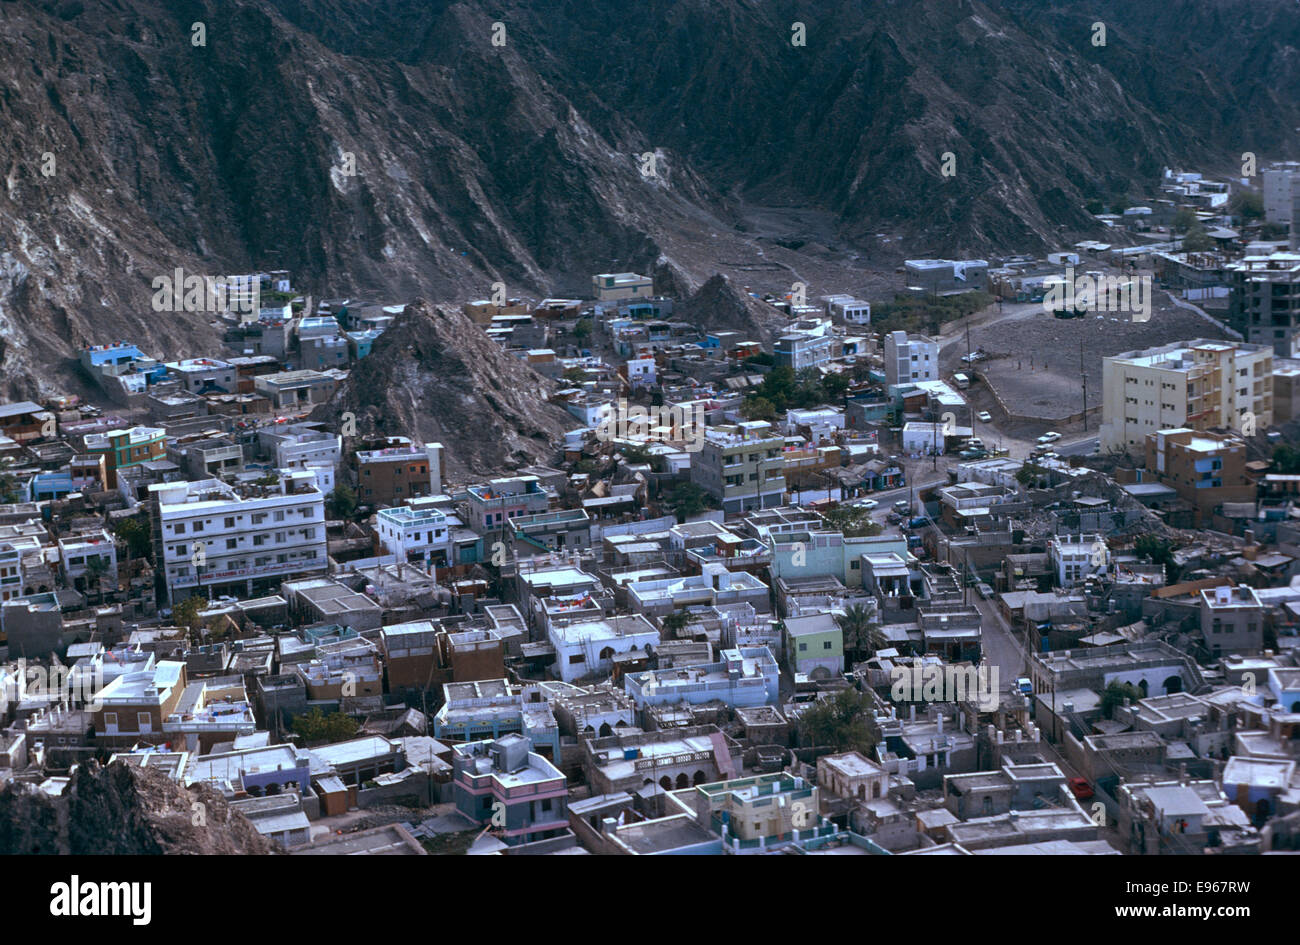 Aerial view over Ruwi-Muscat, Oman, 1975 - Stock Image